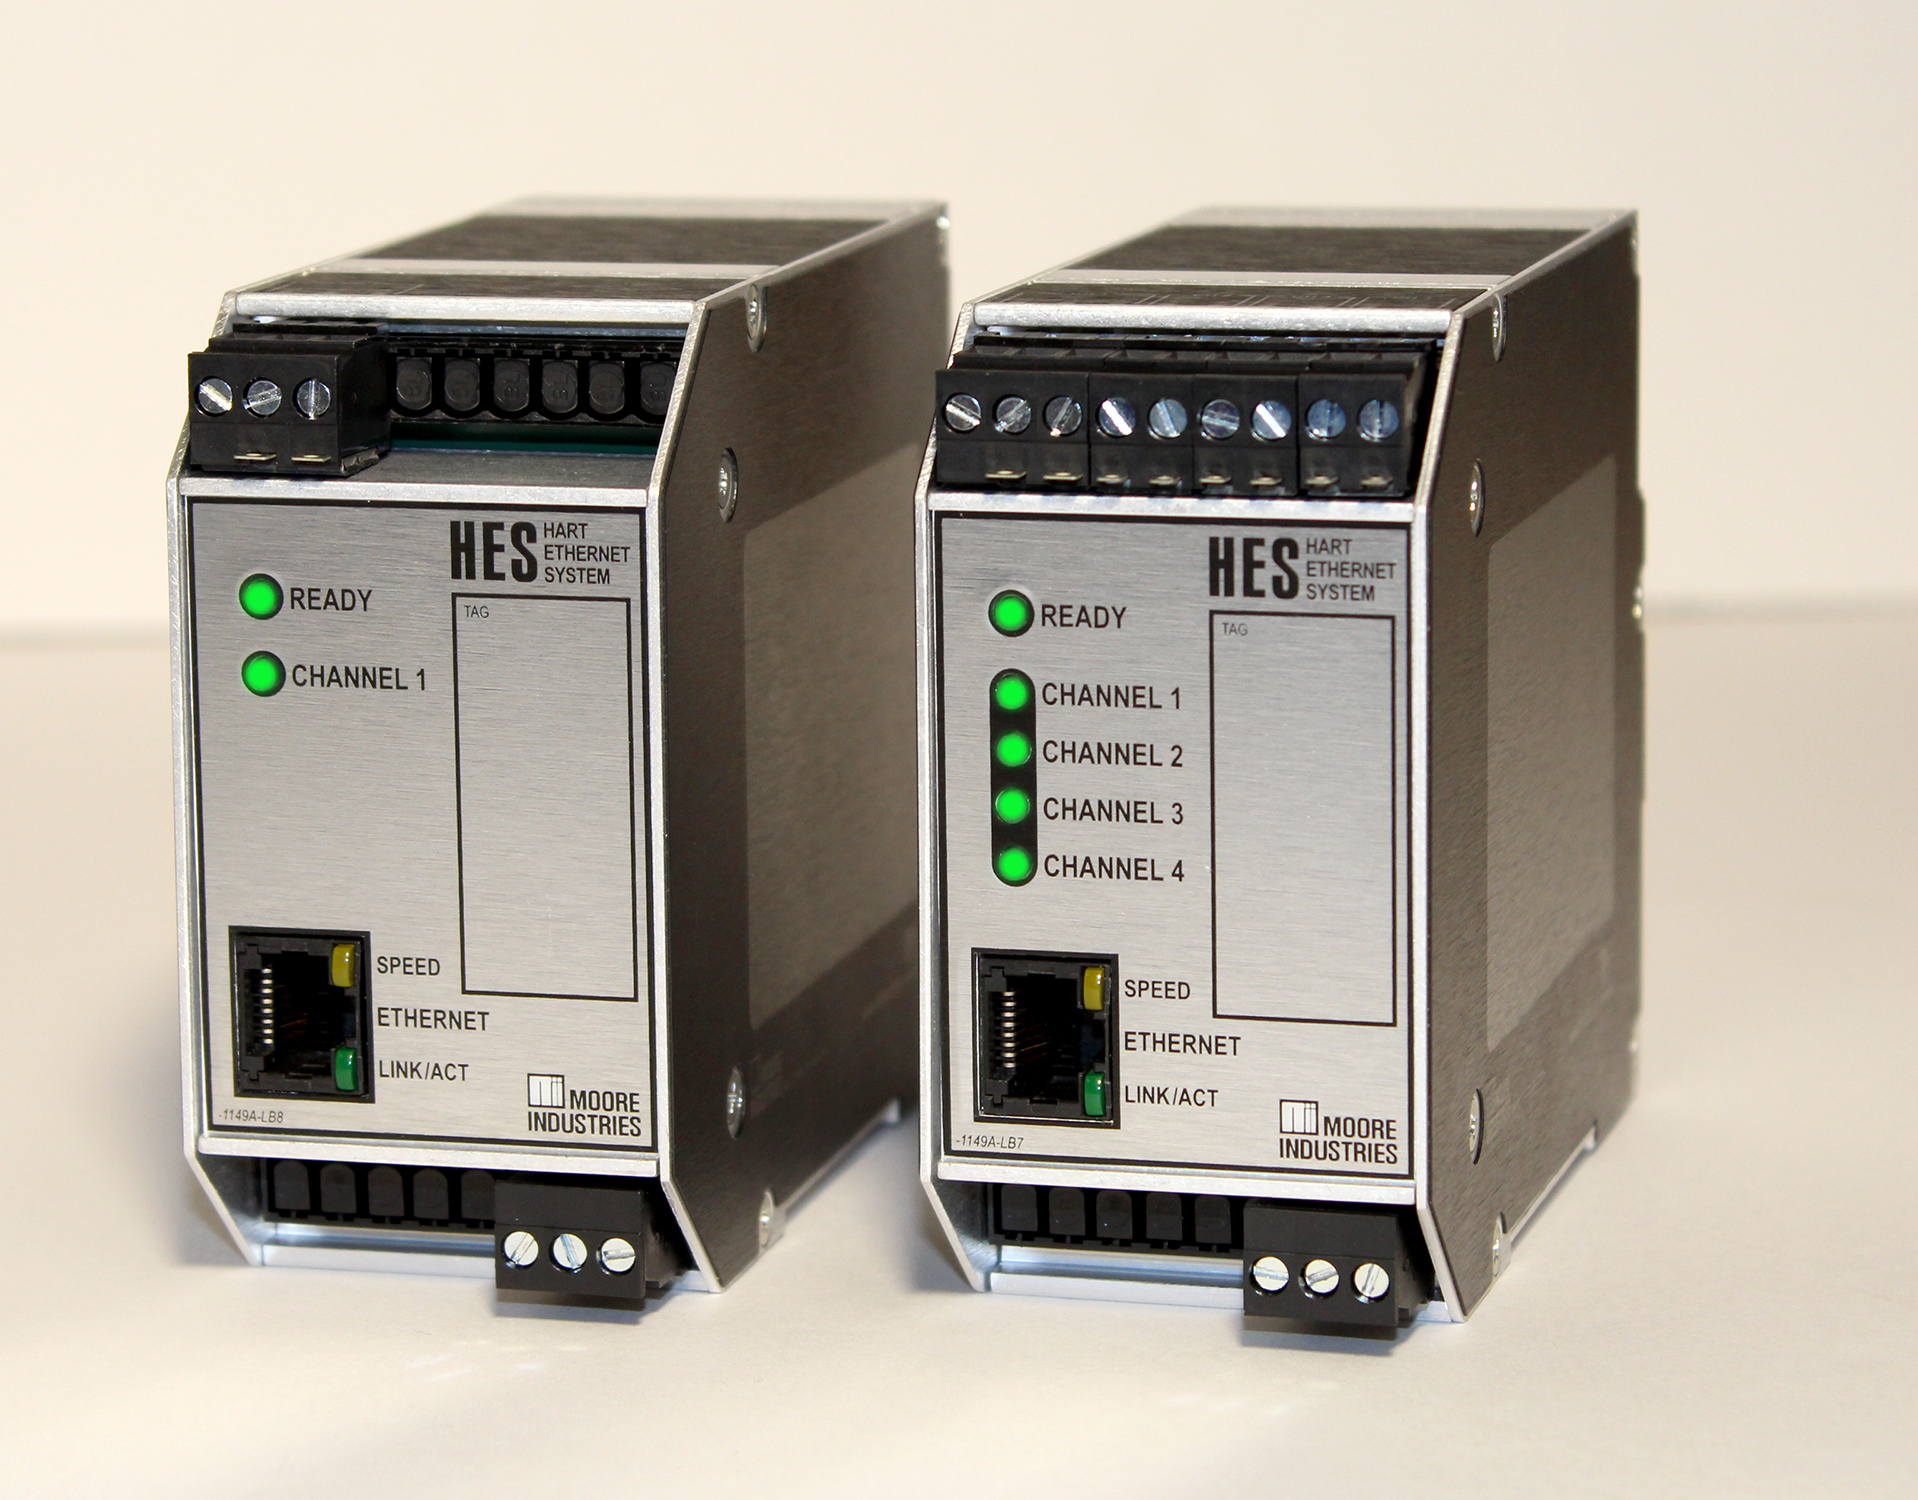 HES HART naar Ethernet Gateway Systeem